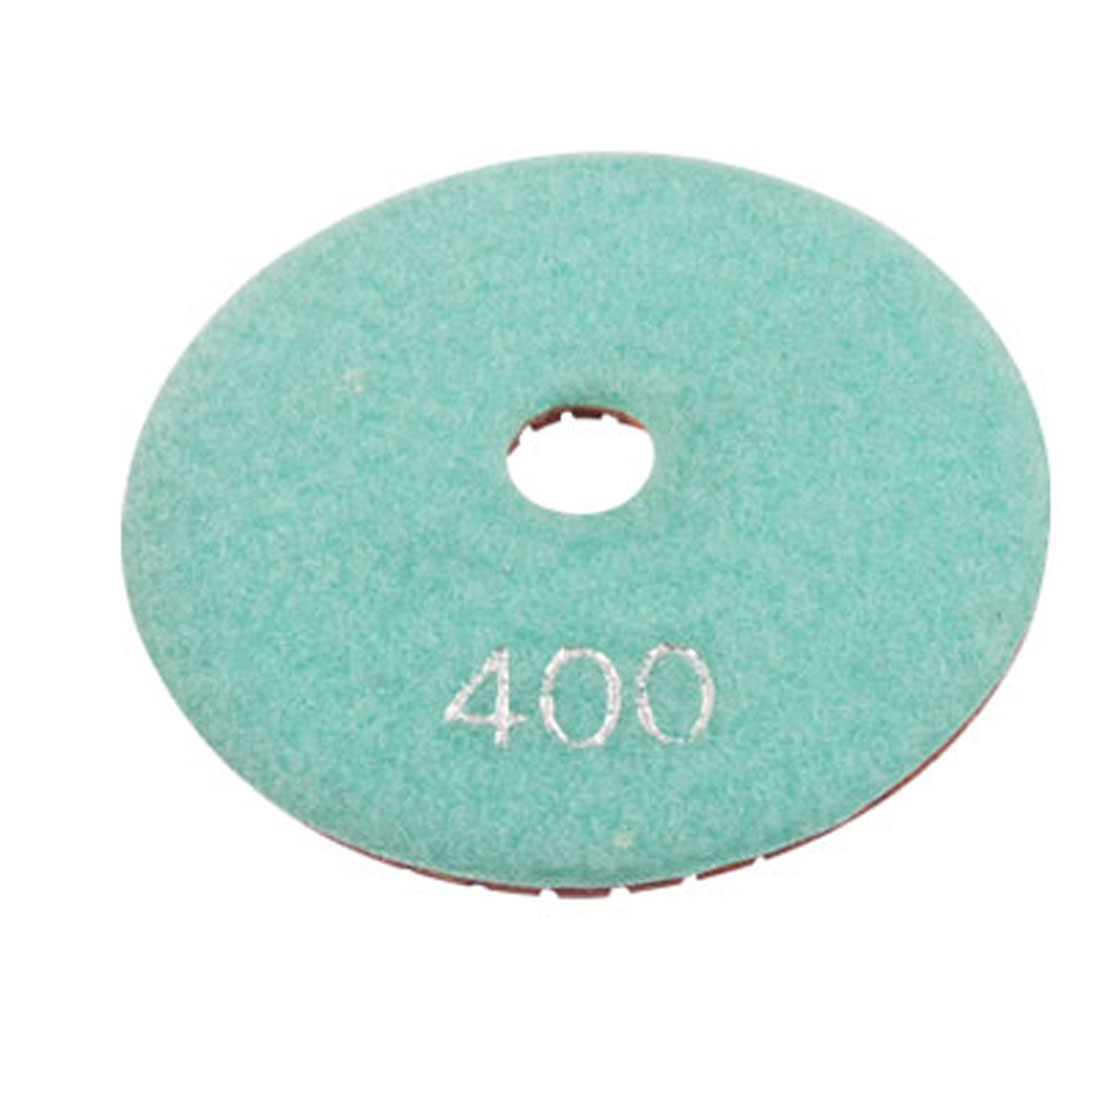 "4"" Inch Wet Dry Diamond Polishing Pad Disc 400 Grit for Granite Marble Stone"